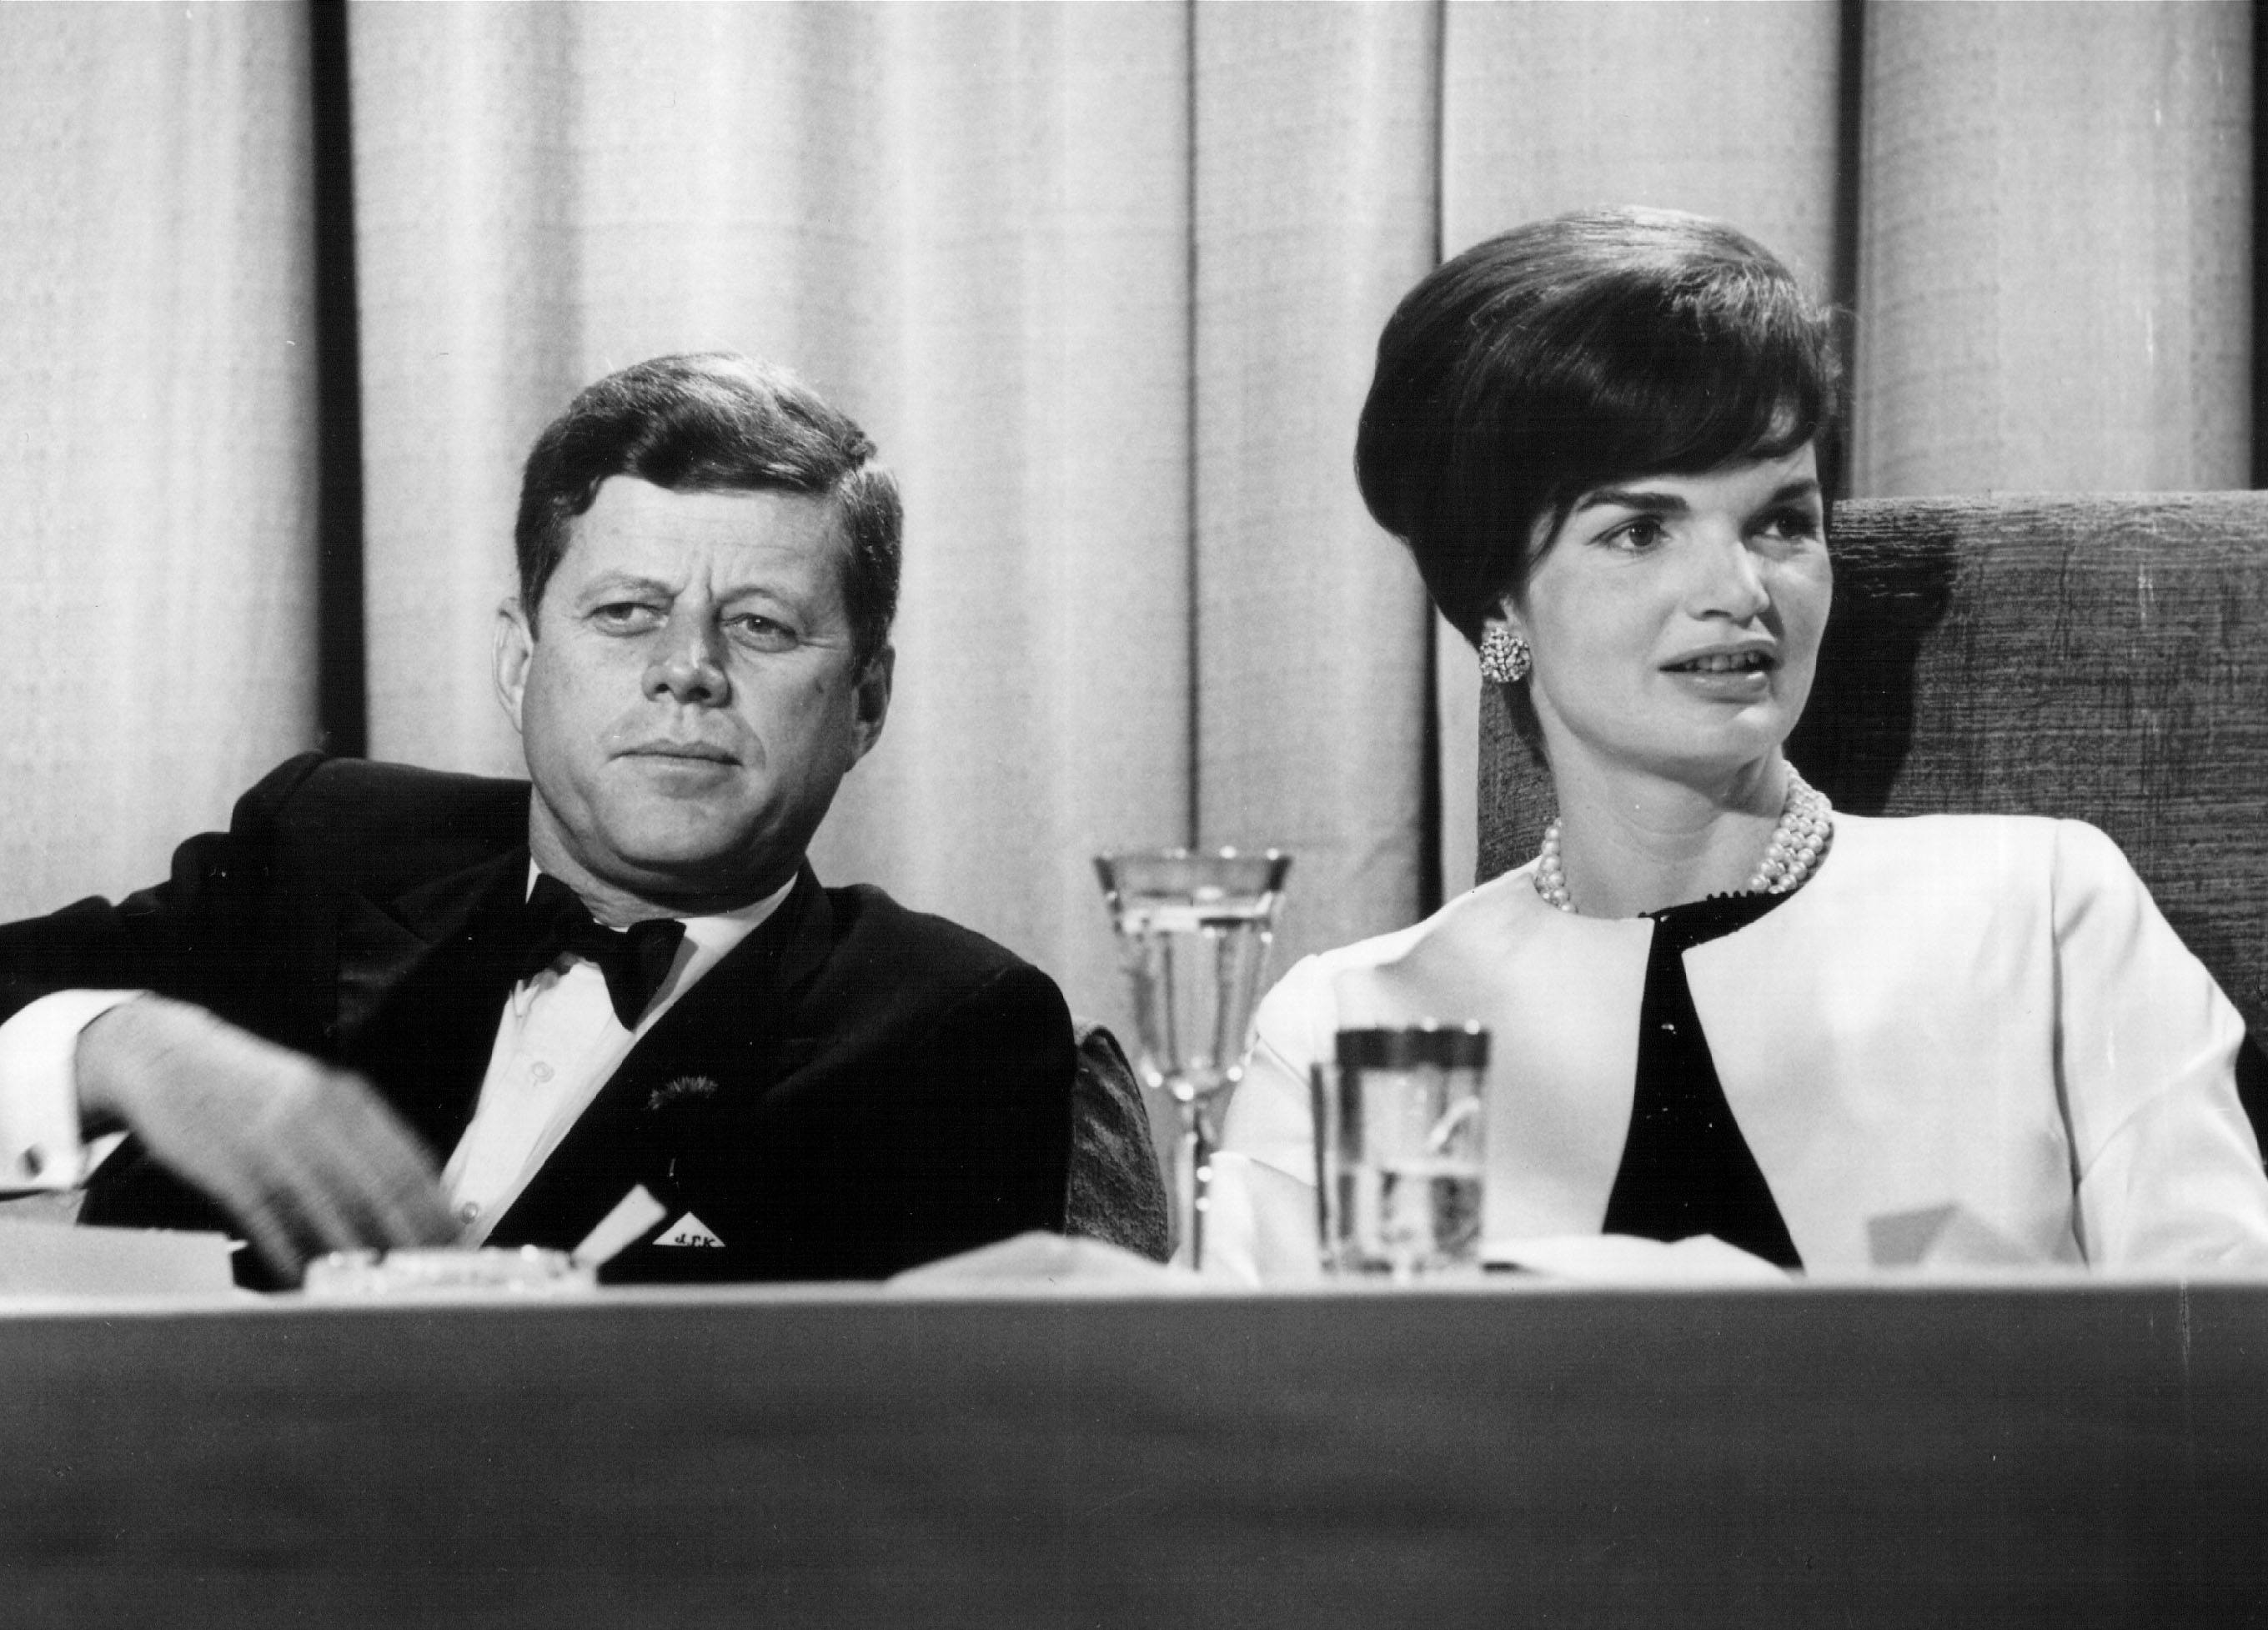 President John F. Kennedy and First Lady Jackie Kennedy seated at a table